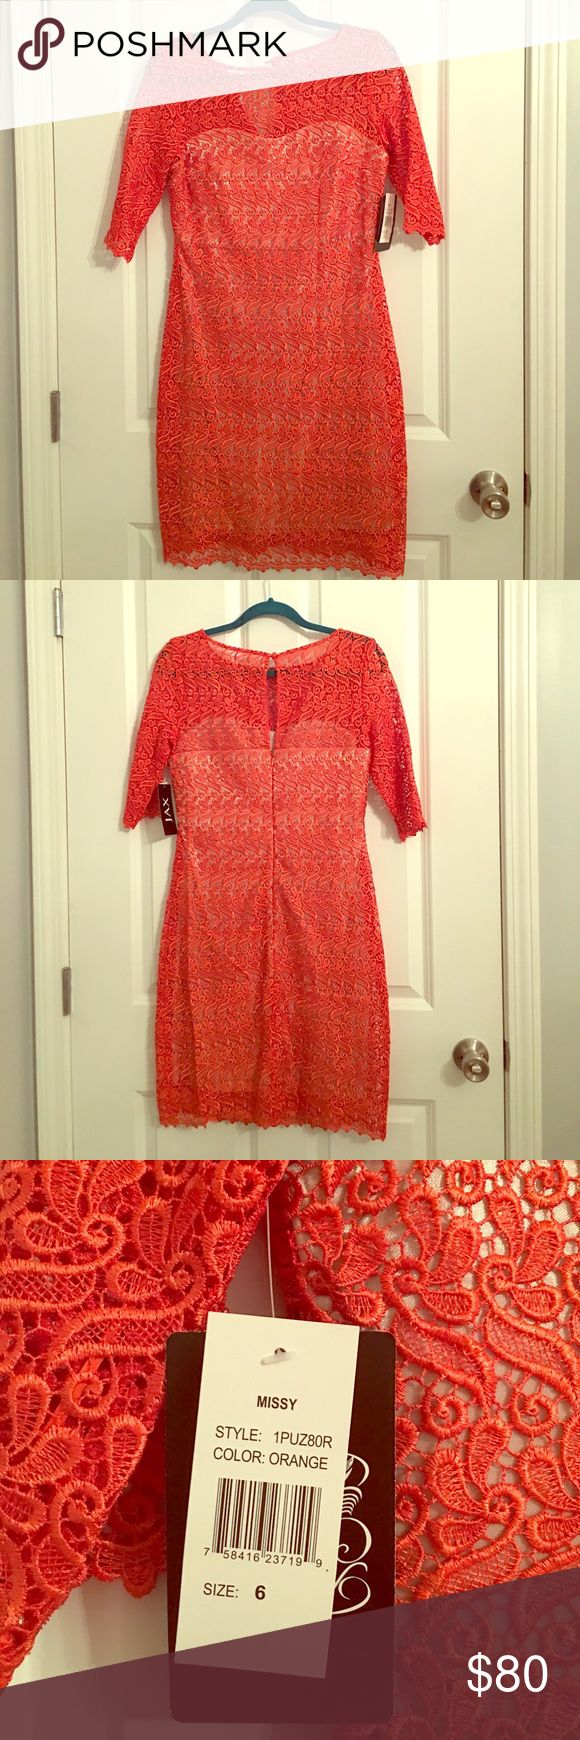 Beautiful, never worn, nwt,  lace dress New with tags. Never worn. Orange lace dress. Jax Dresses